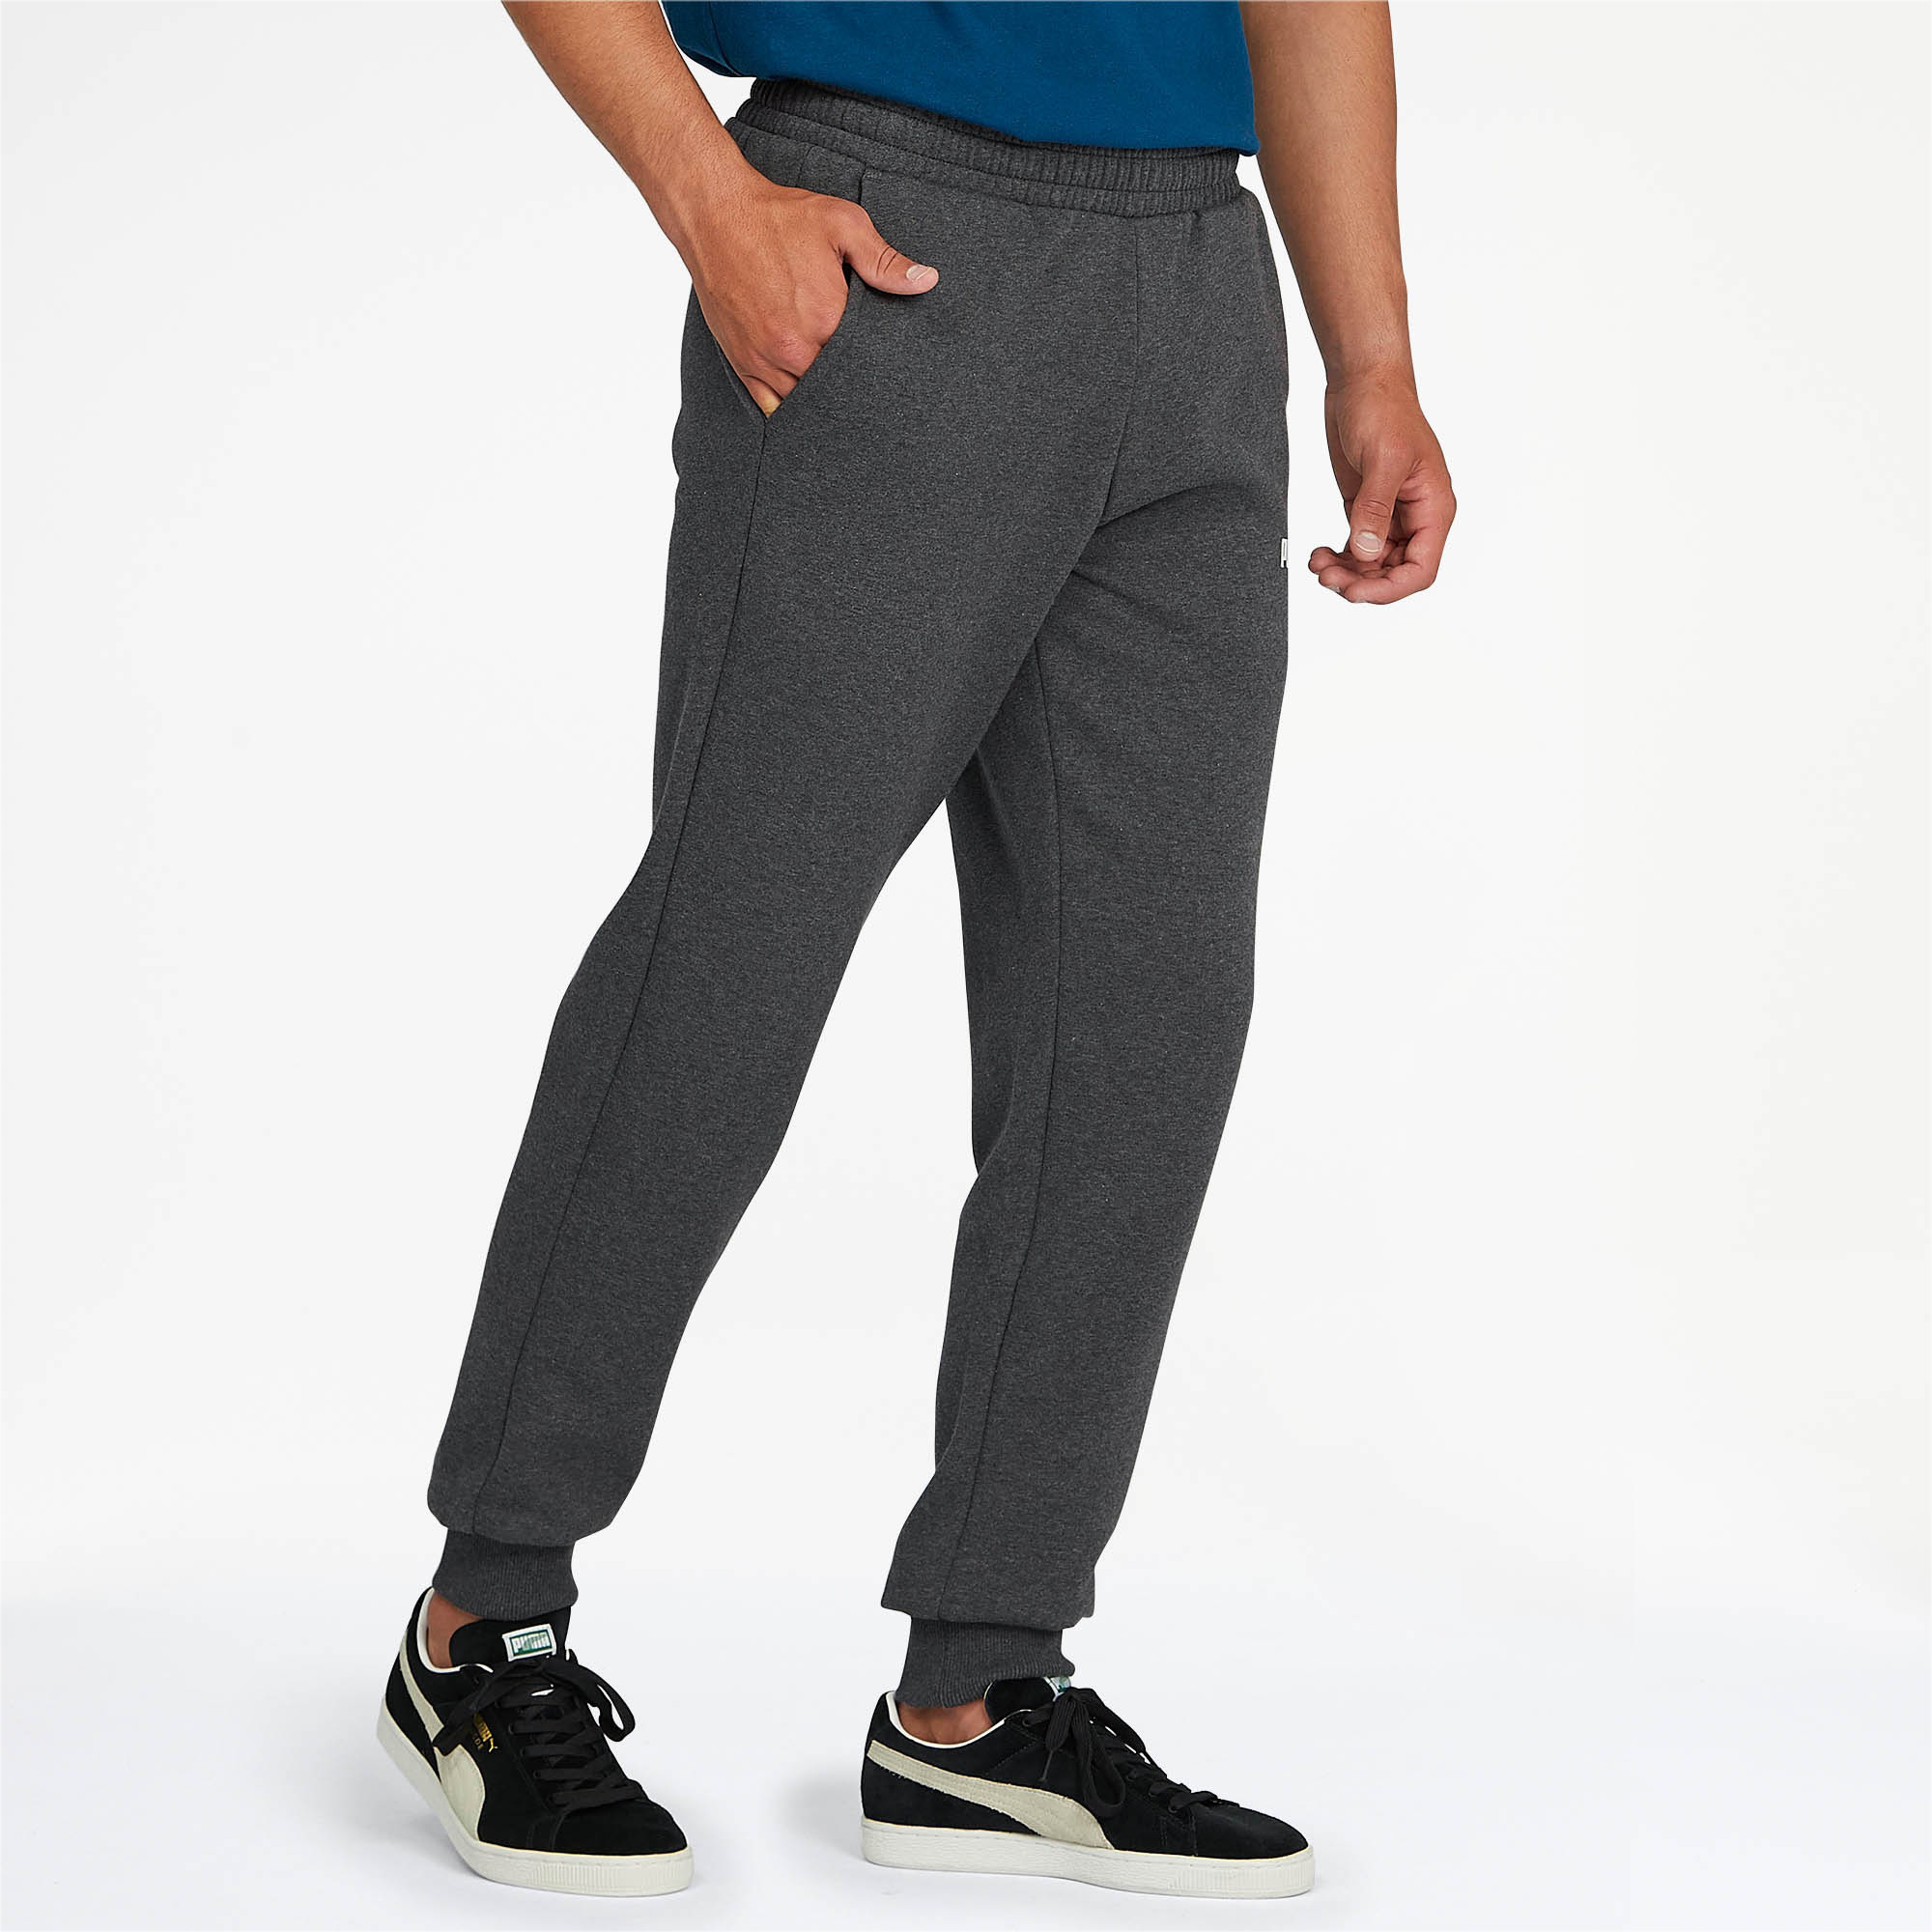 PUMA-Essentials-Men-039-s-Fleece-Knit-Pants-Men-Knitted-Pants-Basics thumbnail 16